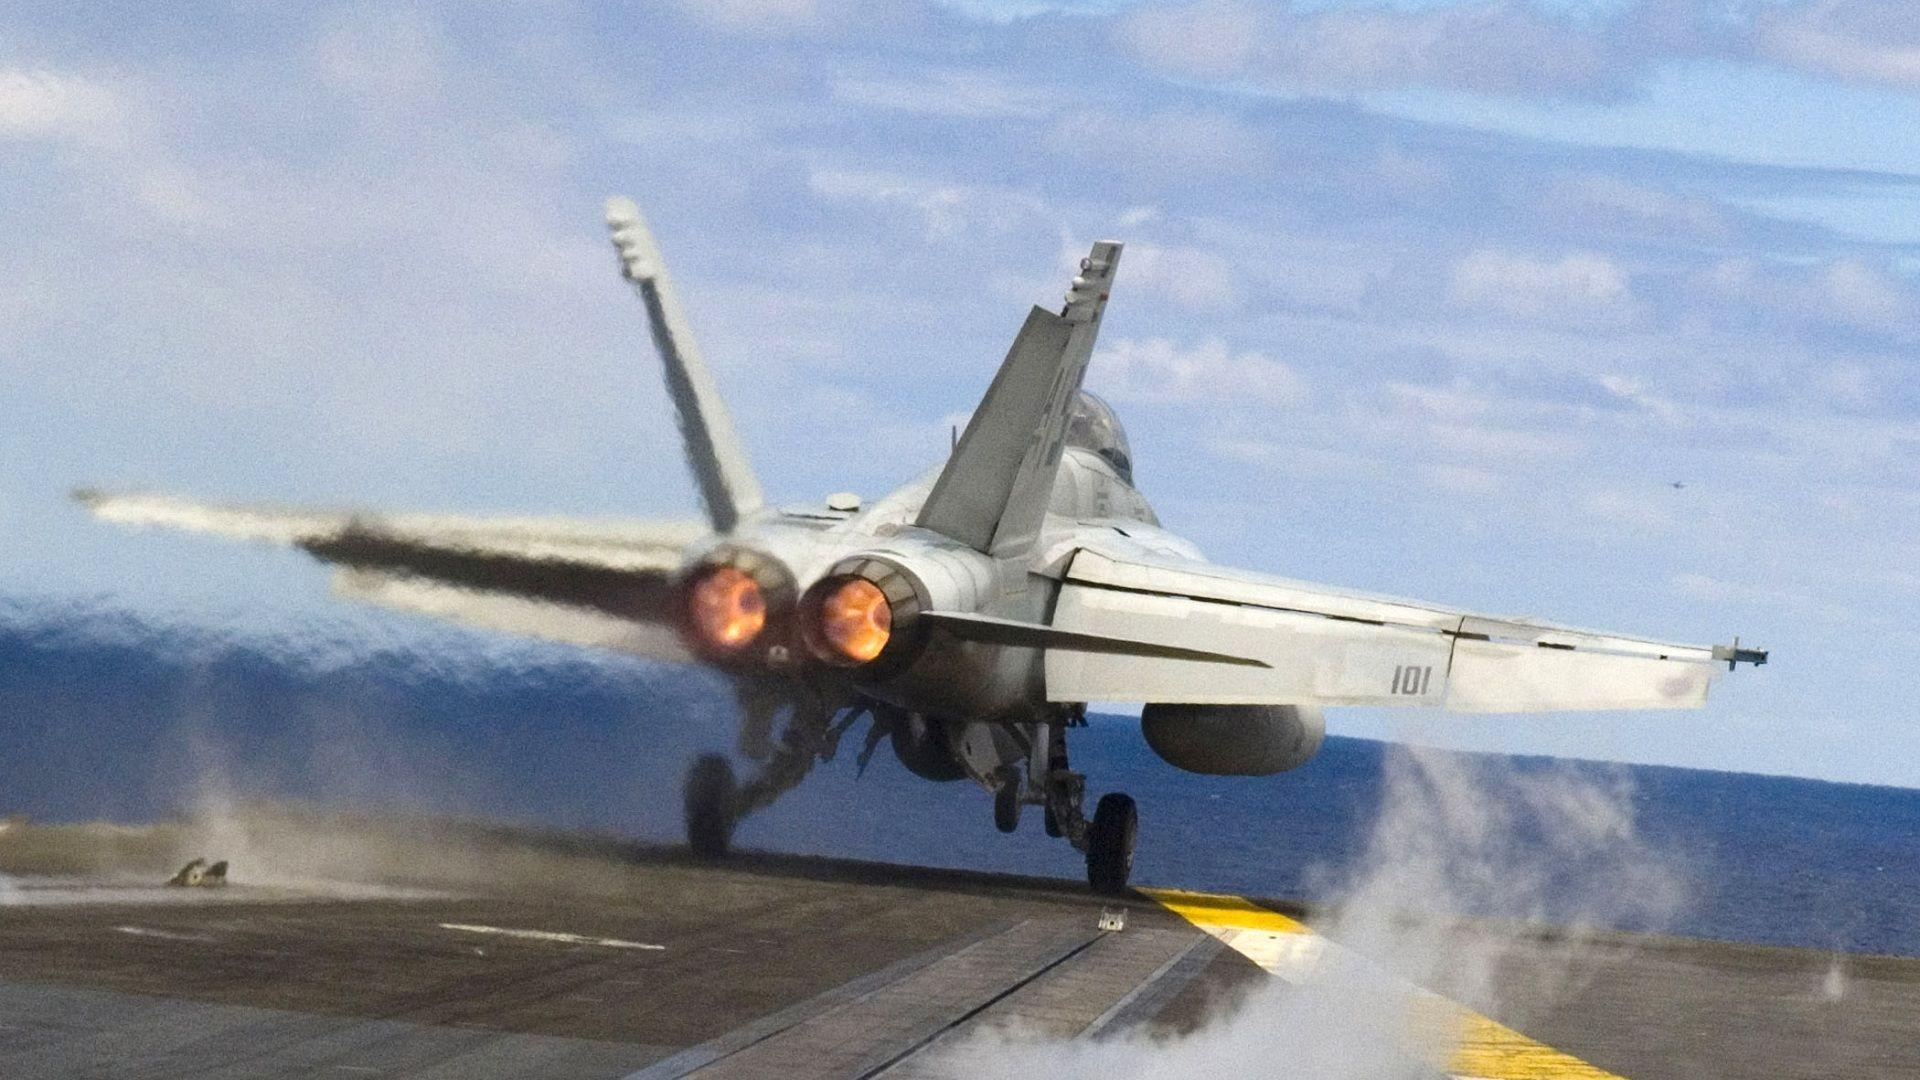 F 18 Wallpapers - Wall...